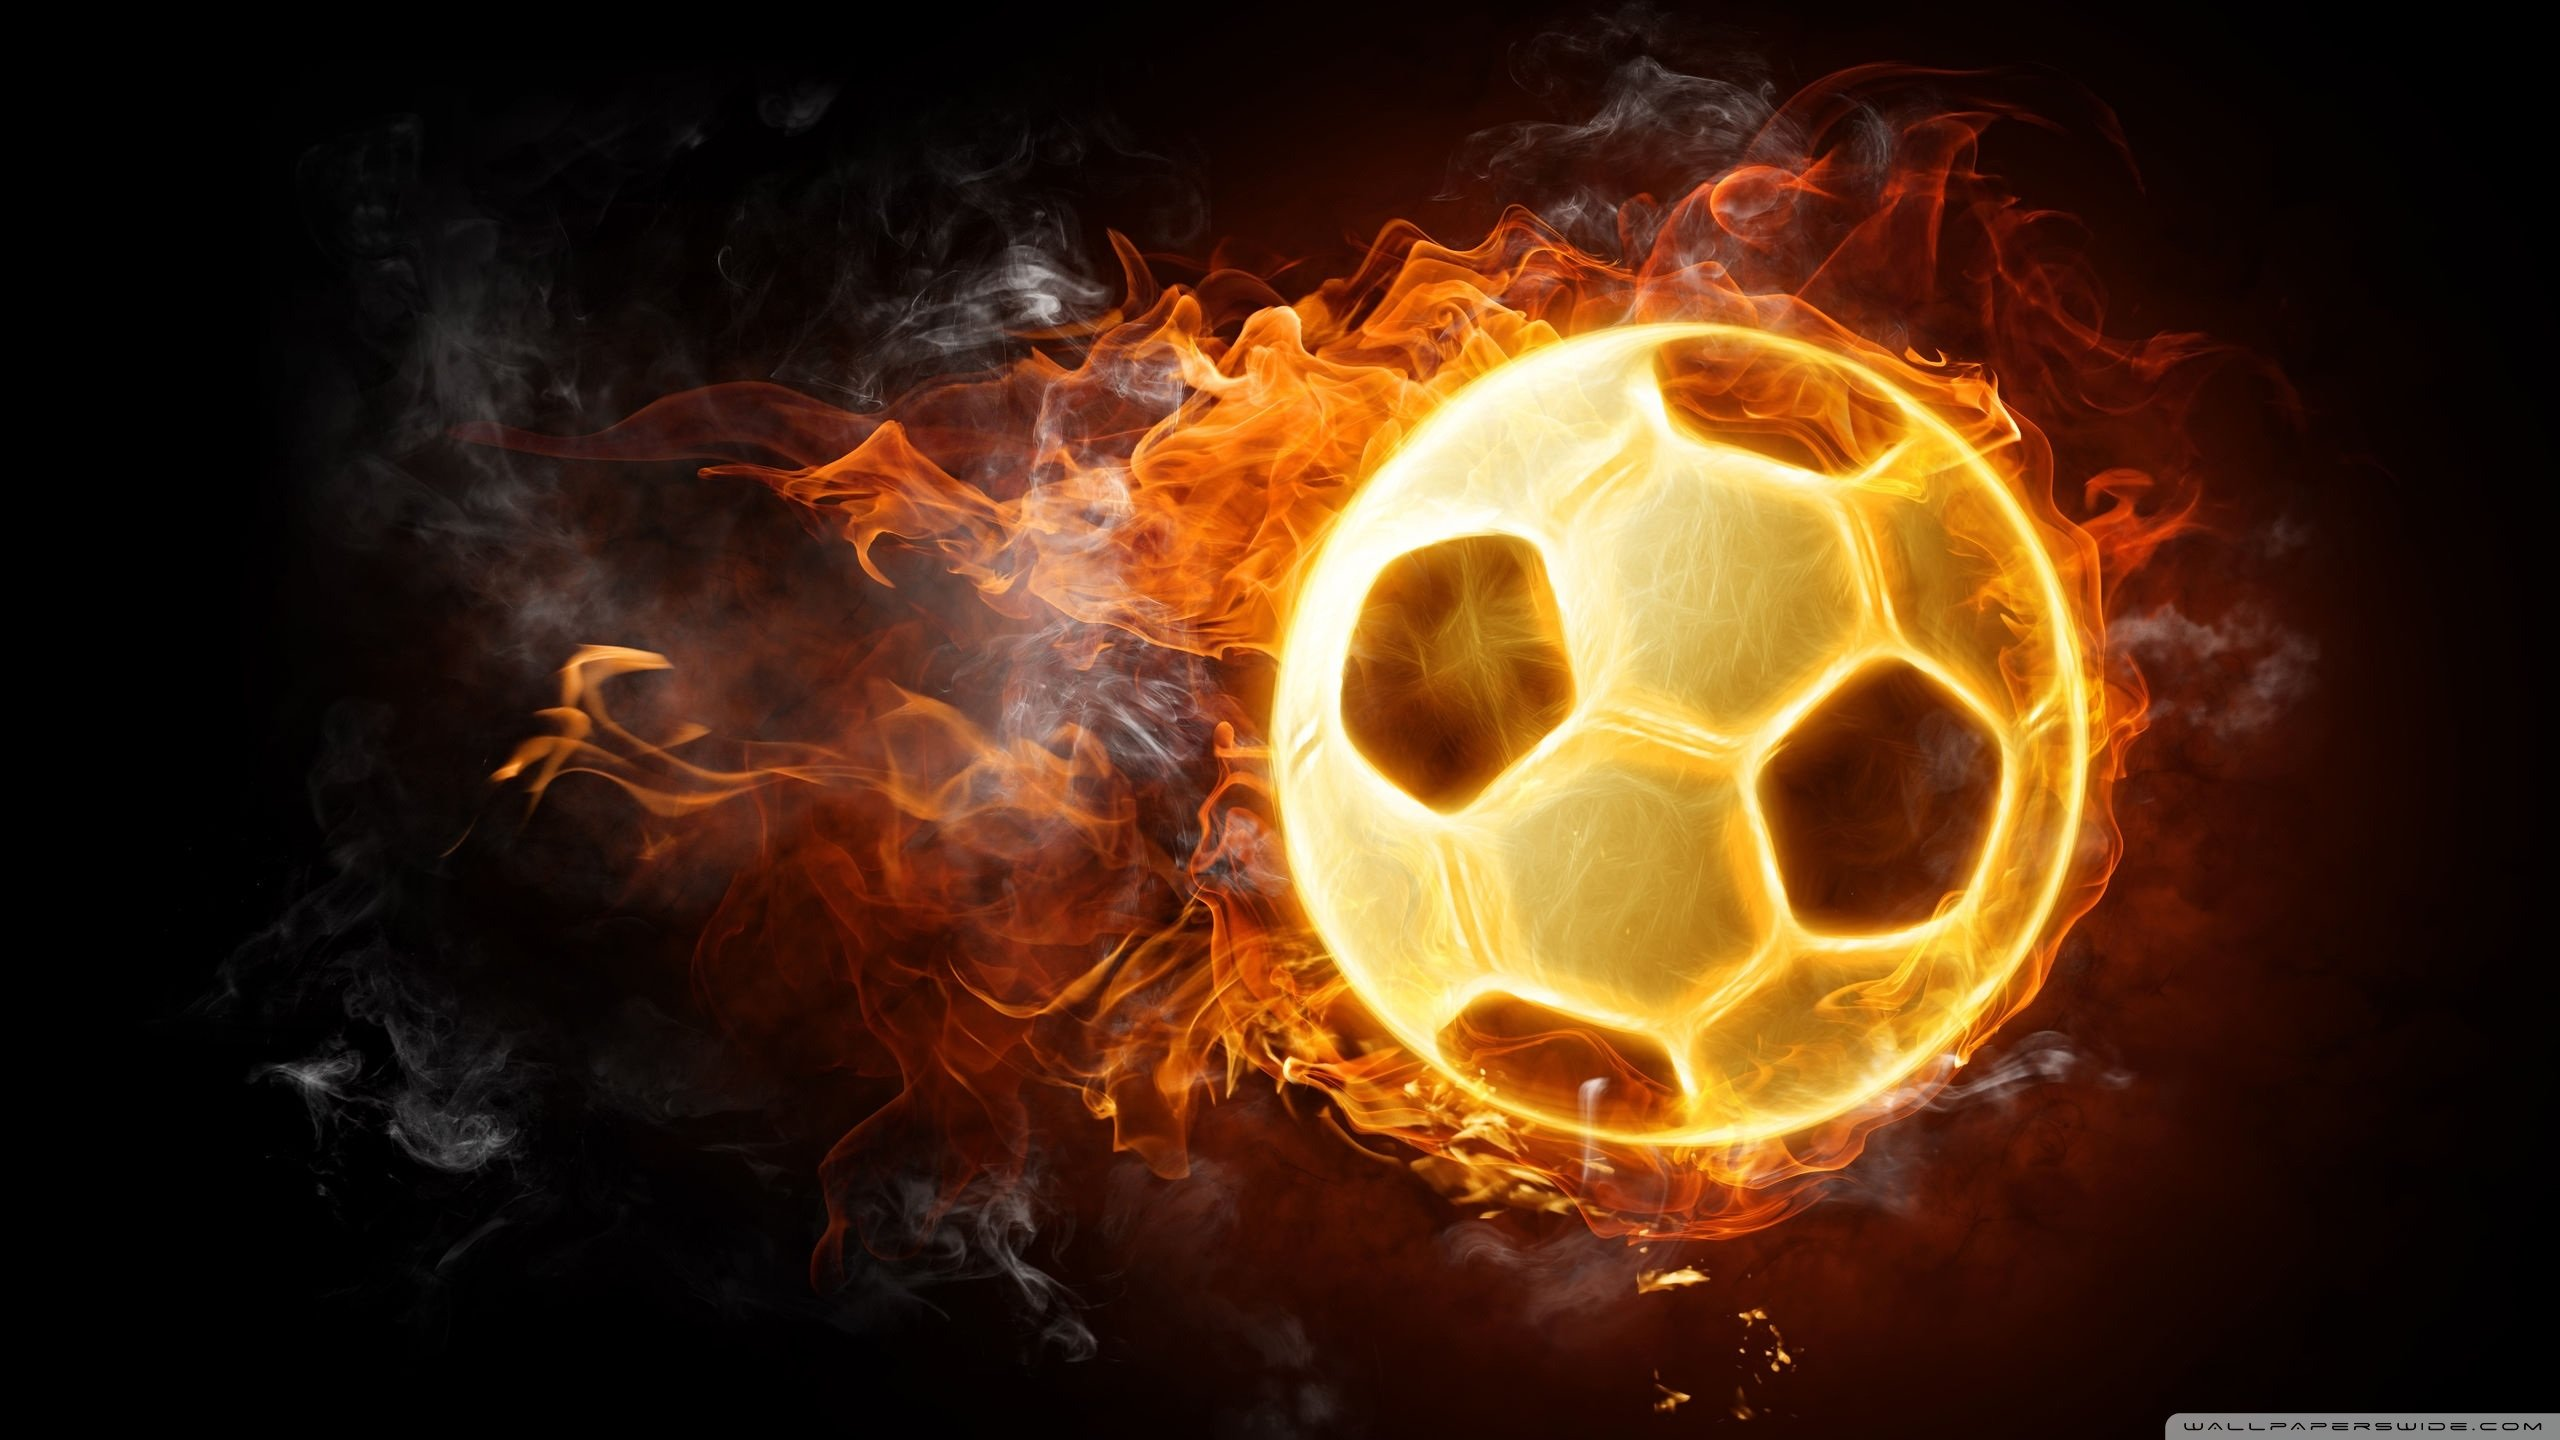 Free download Soccer wallpaper ID:188776 hd 2560x1440 for computer